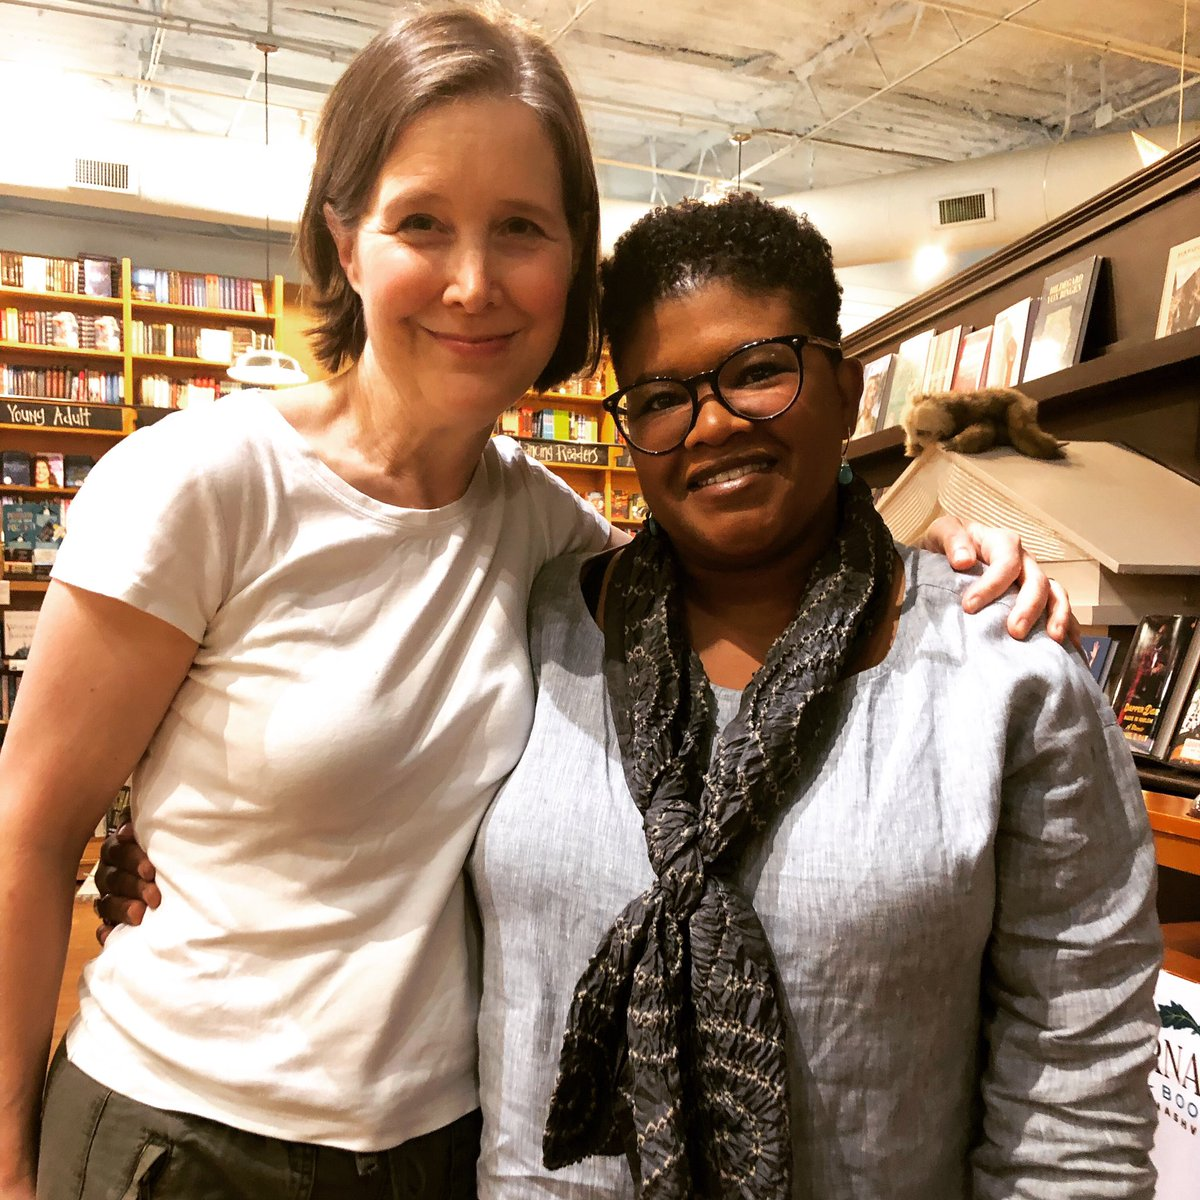 When you walk into @parnassusbooks1 in Nashville and an award-winning author is stacking shelves, you know you've arrived at a special bookstore as down-to-earth as its wonderful owner, Ann Patchett.